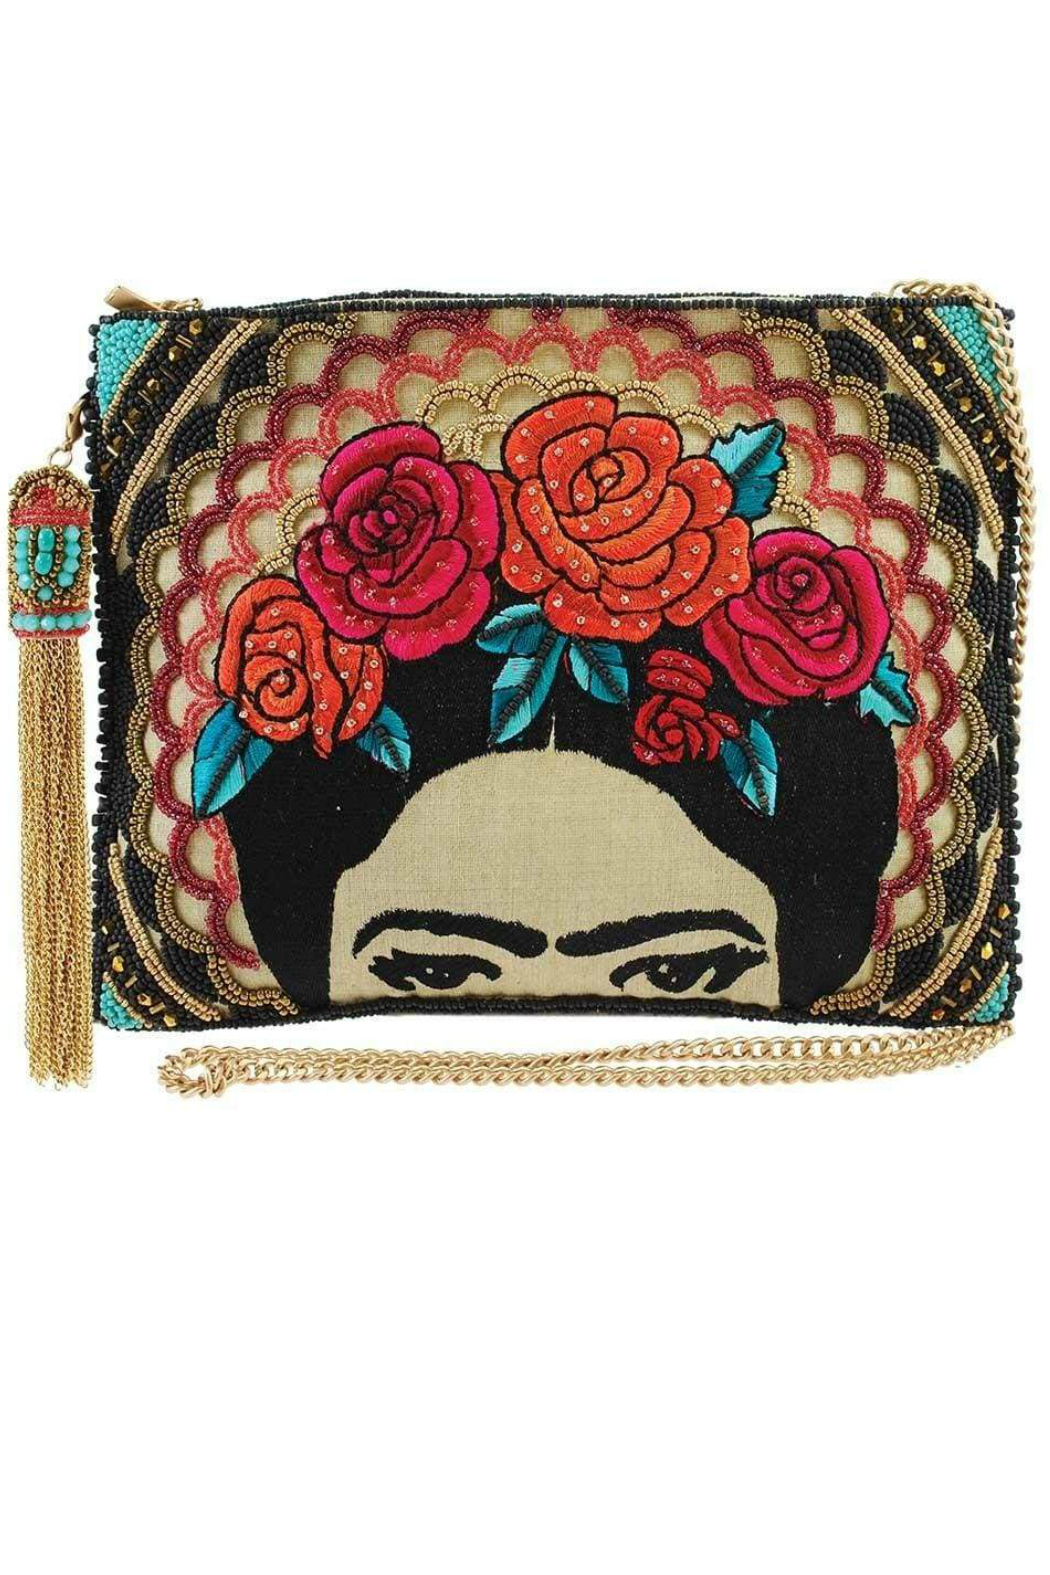 Mary Frances  Frida Beaded-Embroidered Crossbody Clutch Handbag - Front Cropped Image